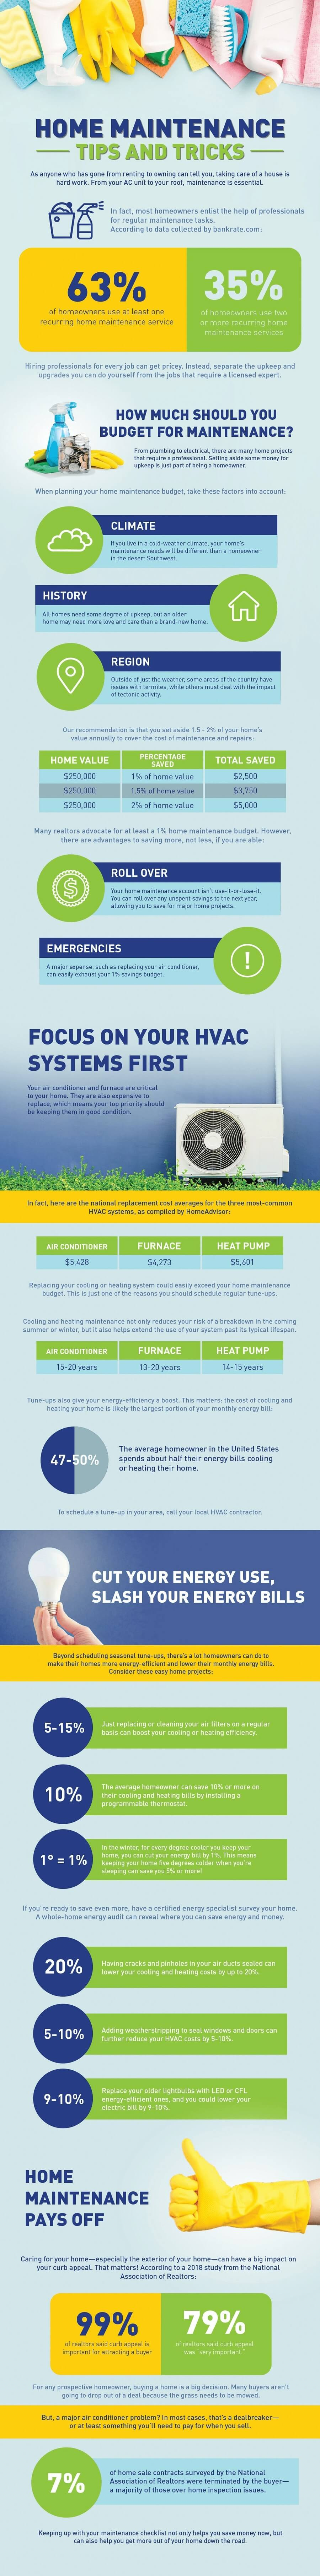 home-maintenance-tips-and-tricks-blog-infographic-tiny_orig